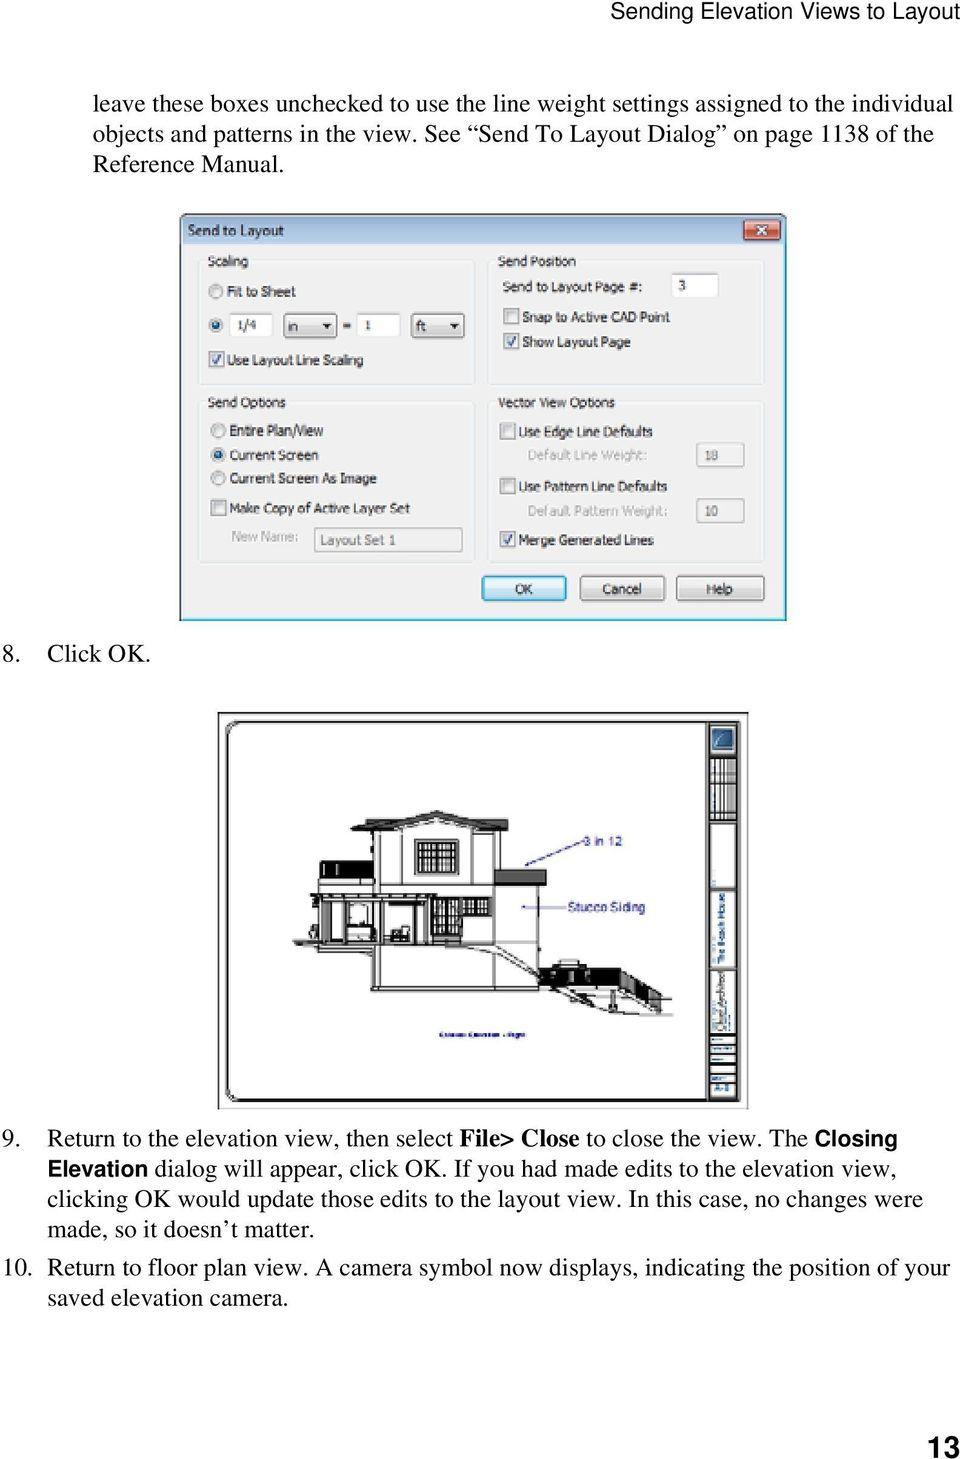 The Closing Elevation dialog will appear, click OK. If you had made edits to the elevation view, clicking OK would update those edits to the layout view.